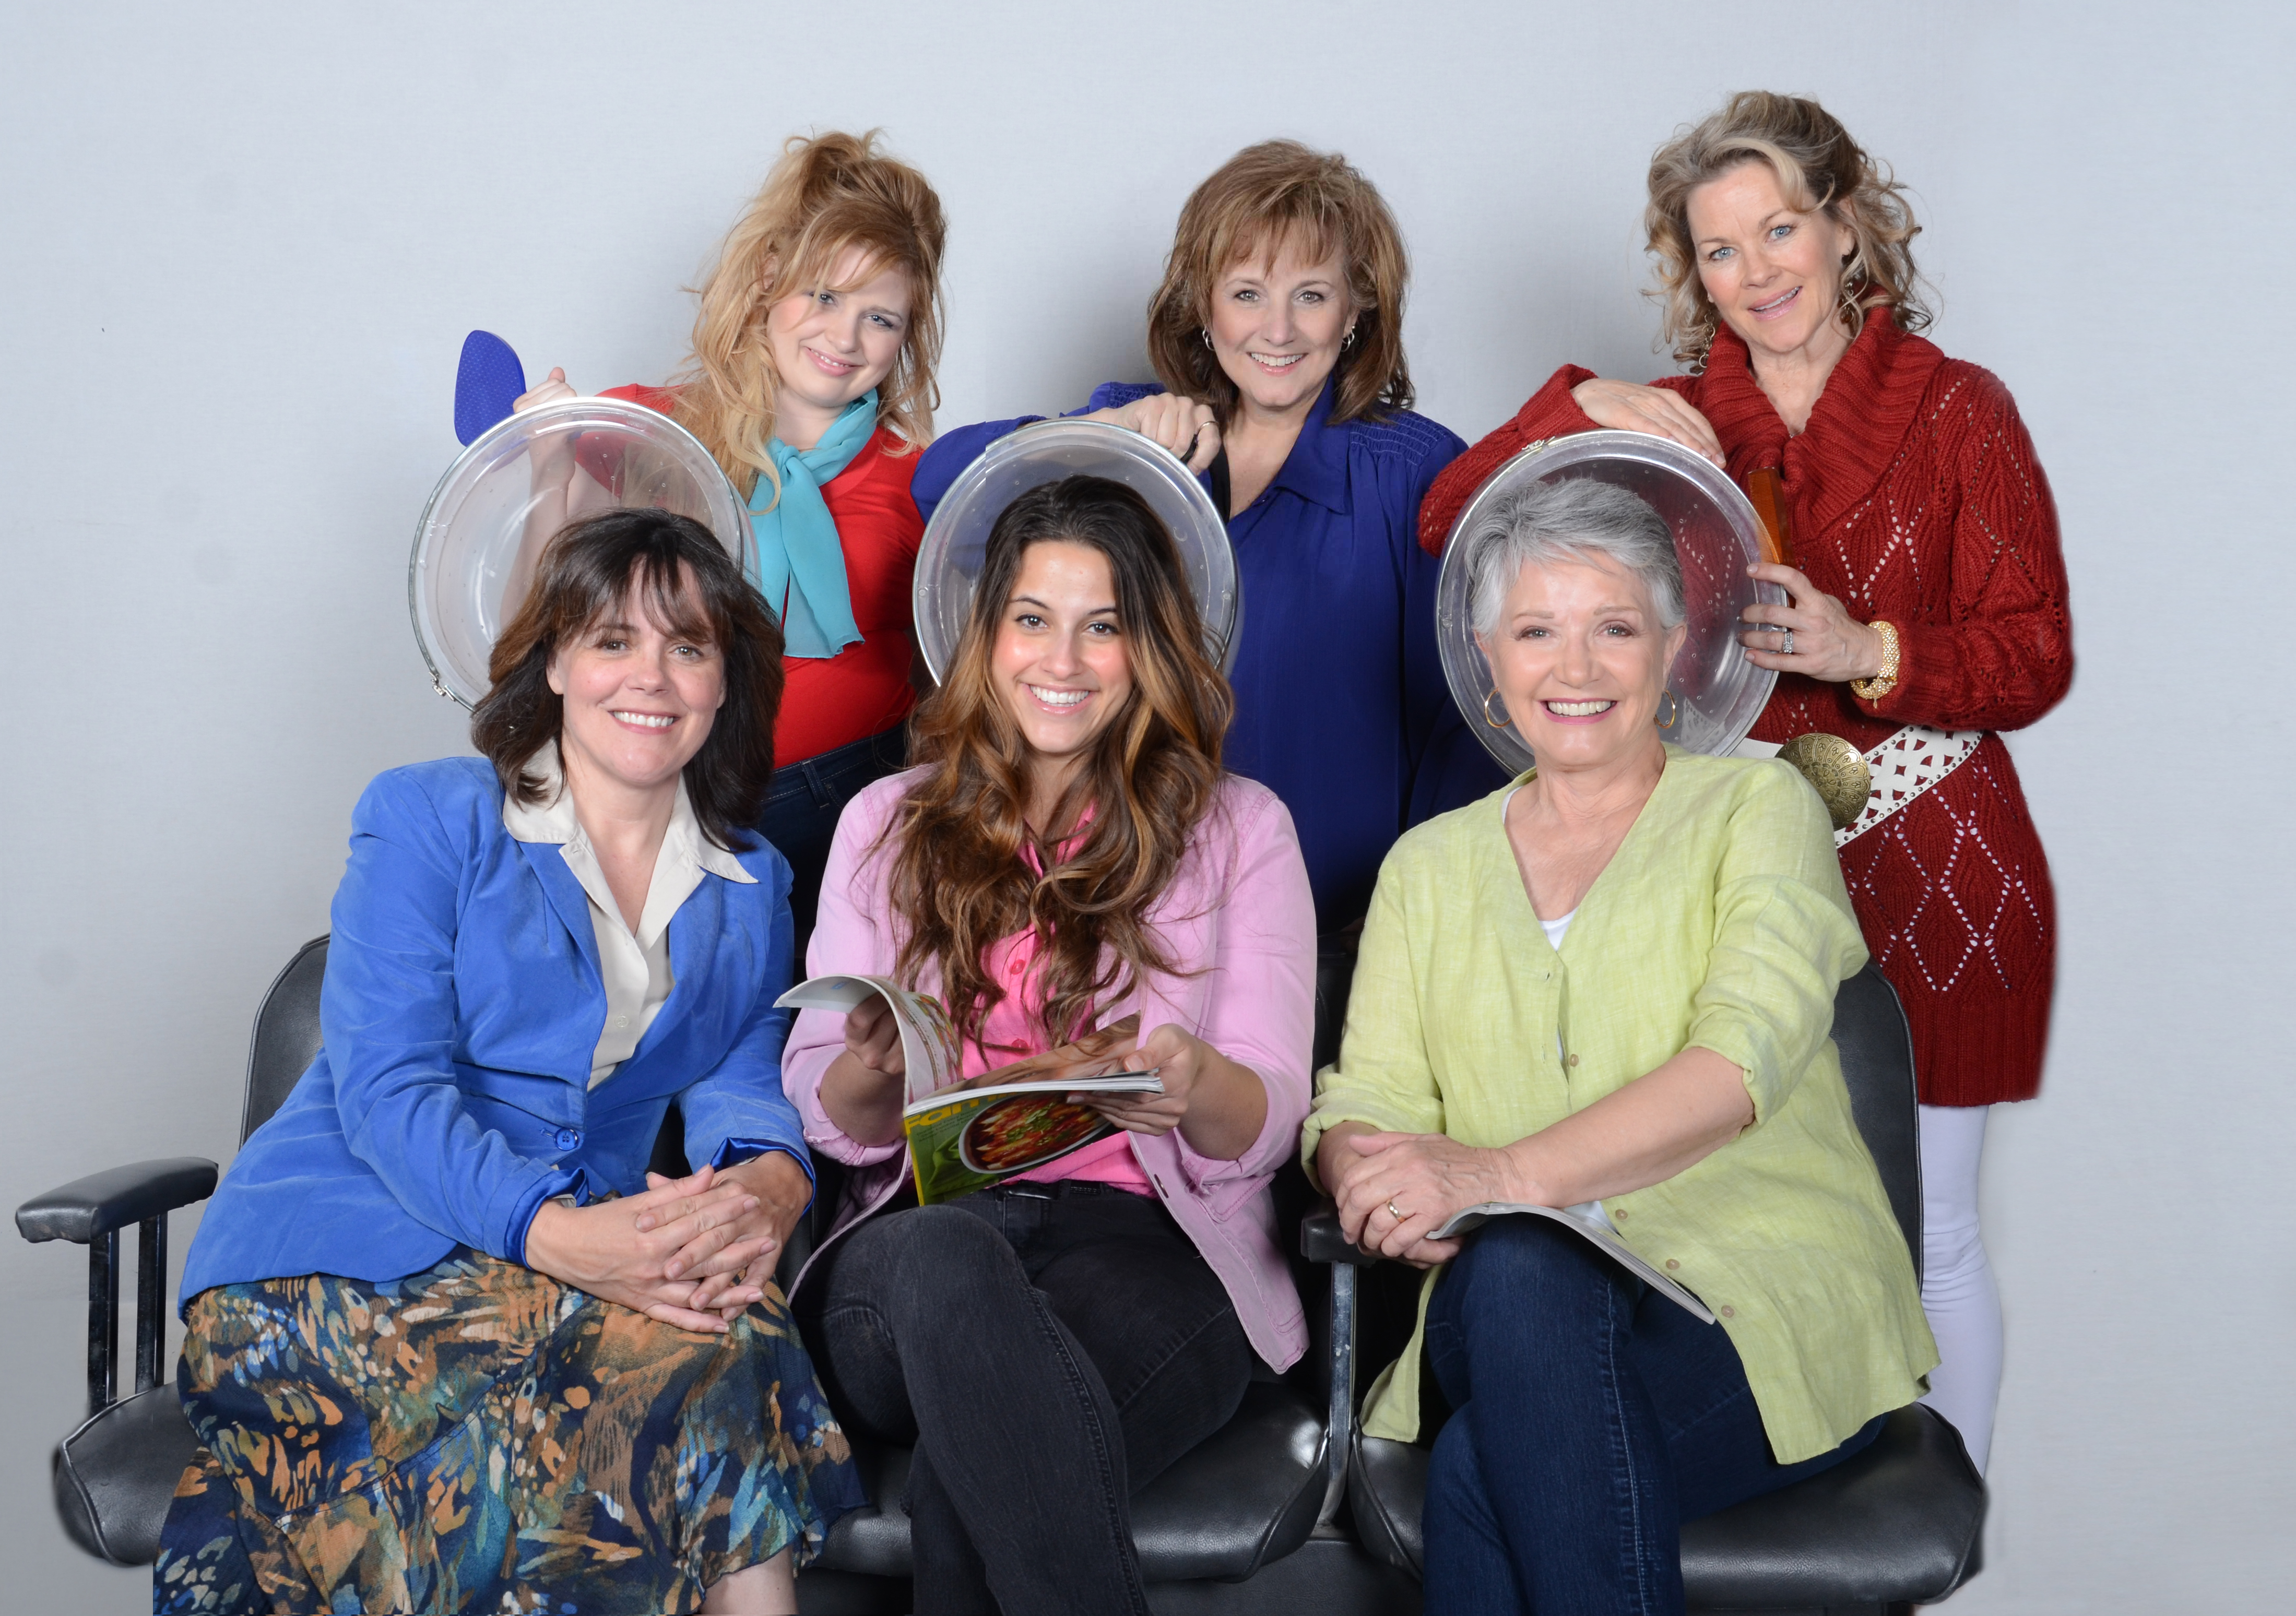 "Scottsdale Community Players, ""Steel Magnolias,"" 2013. L to R – Top Row Ashley Faulkner as Annelle, Laura Durant as Clairee, Jodie Weiss as Truvy; L to R – Bottom Row Maureen Dias Watson as M'Lynn, Jamie Sandomire as Shelby, Patti Davis Suarez as Ouiser. (Photo by Laura Durant)"